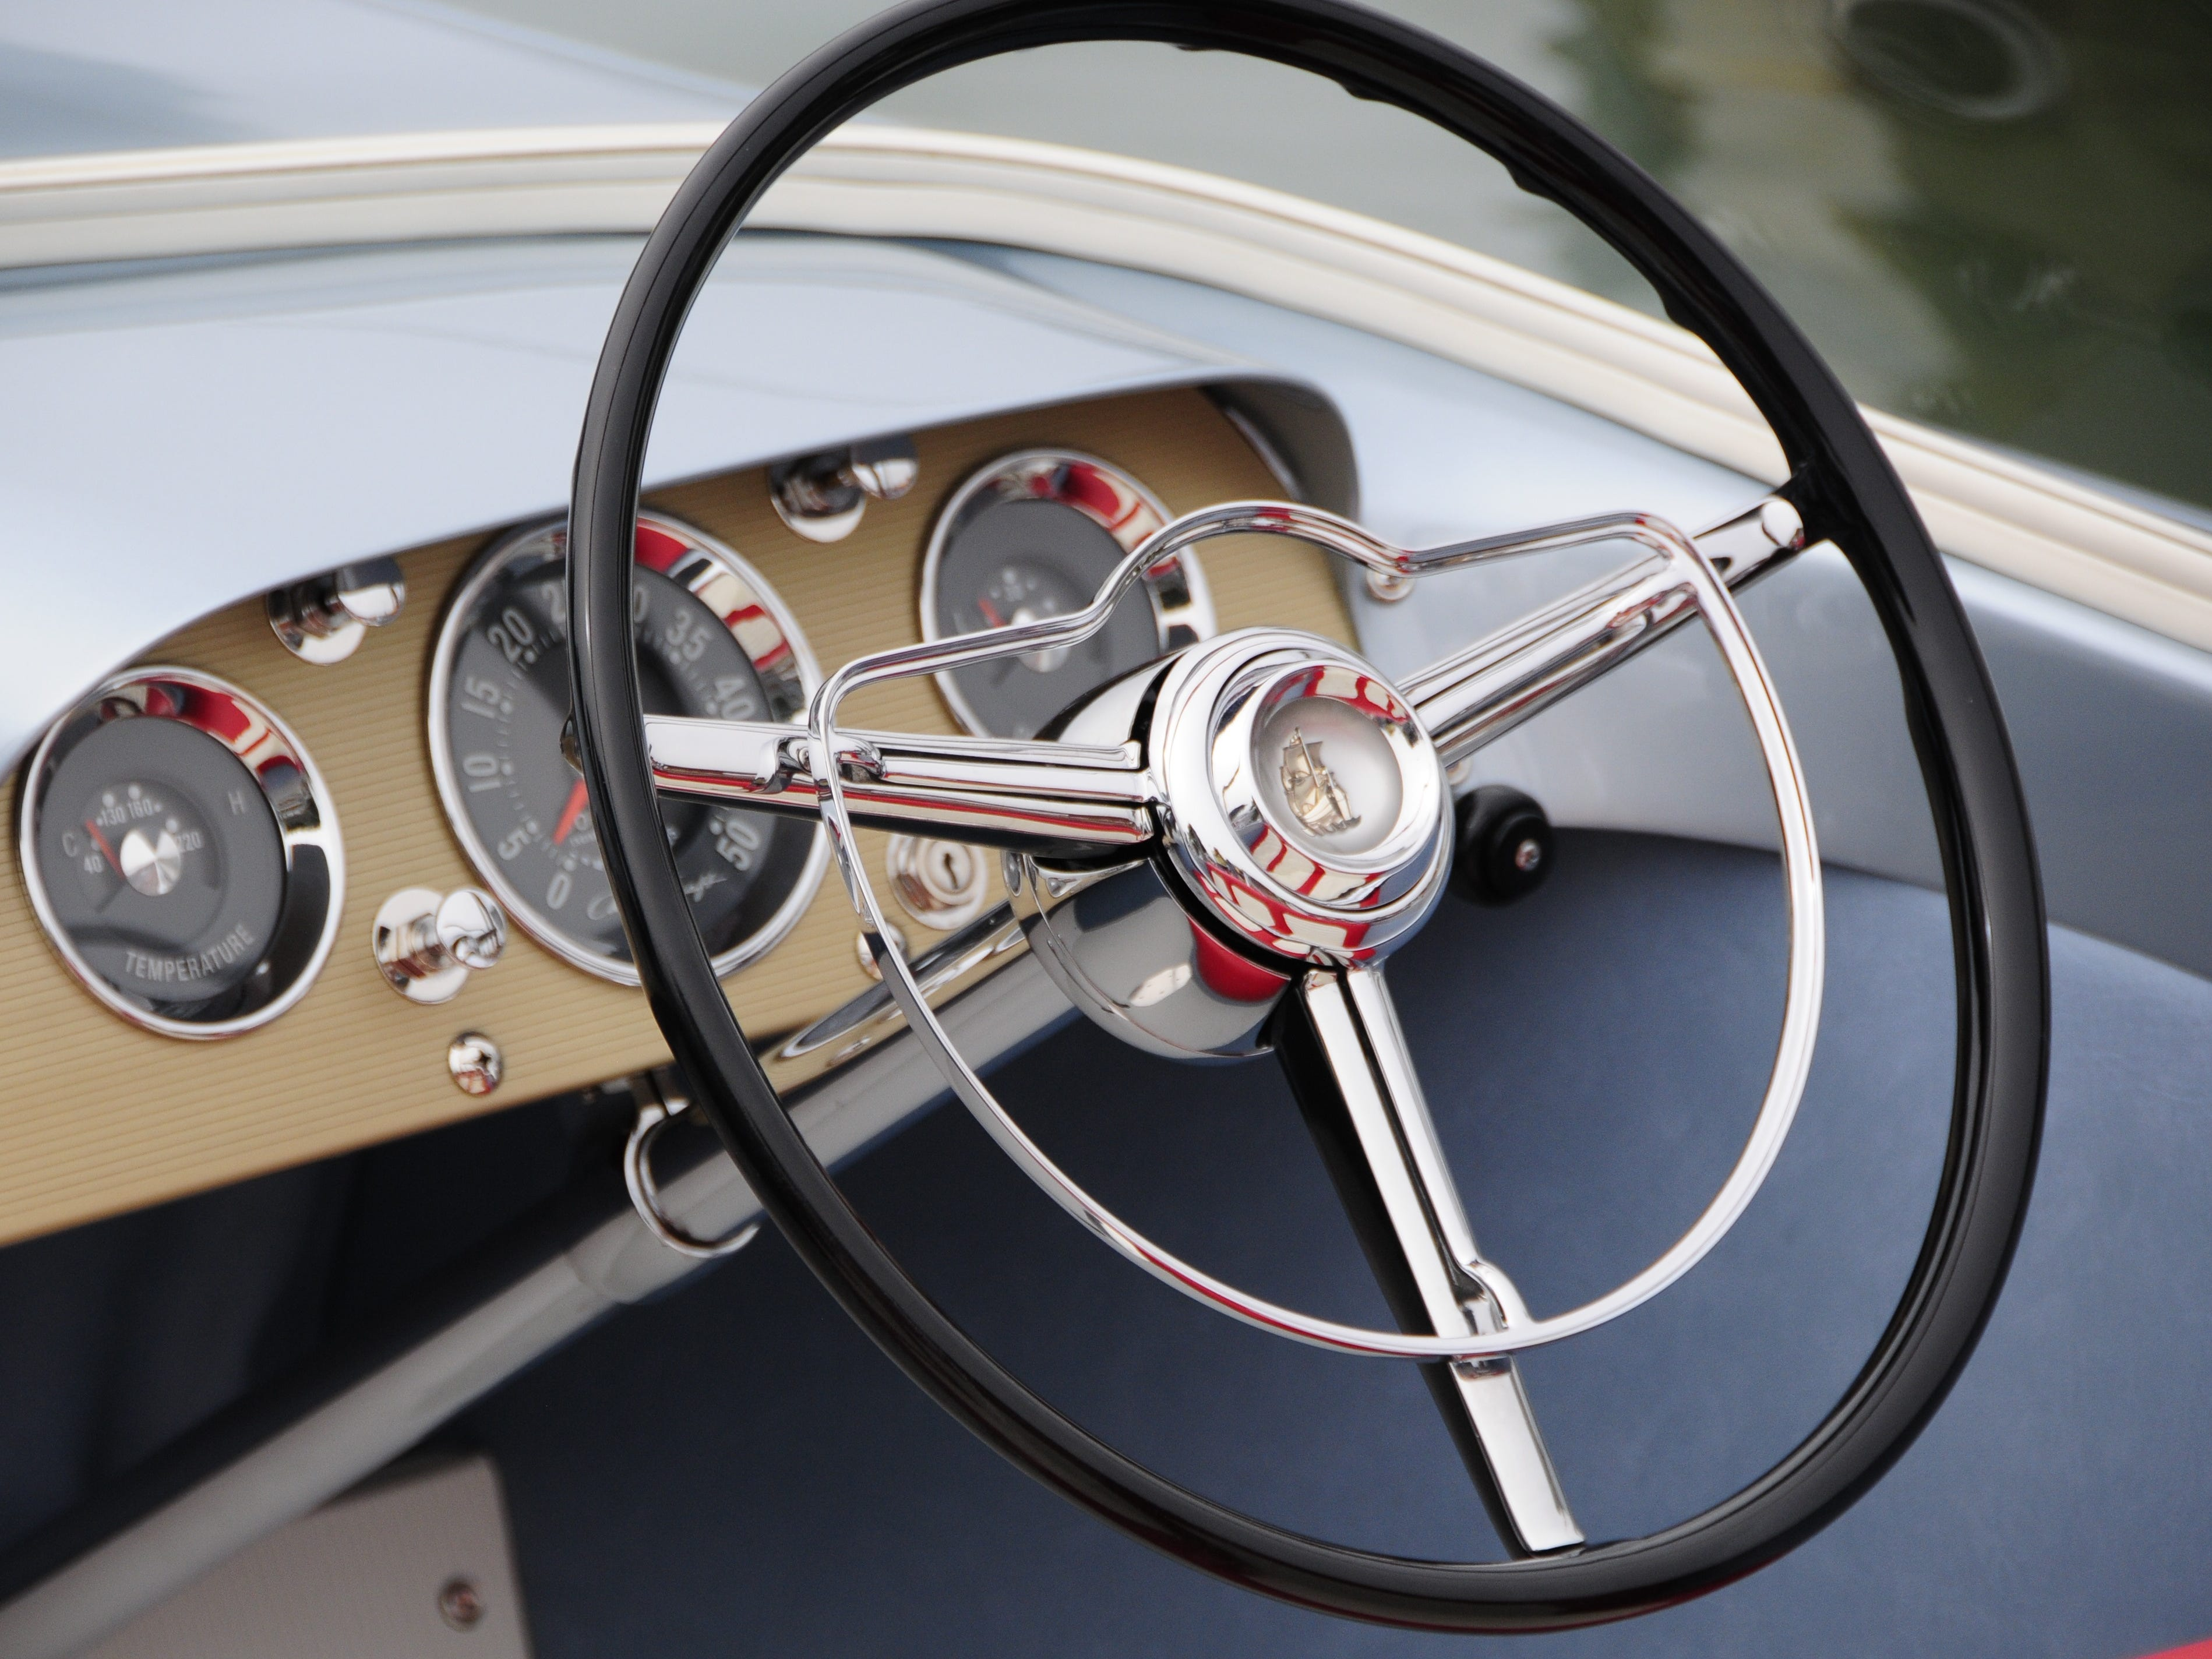 The instrument panel of a 1959 Chris-Craft Silver Arrow mimics the interior of an automobile of the same era.